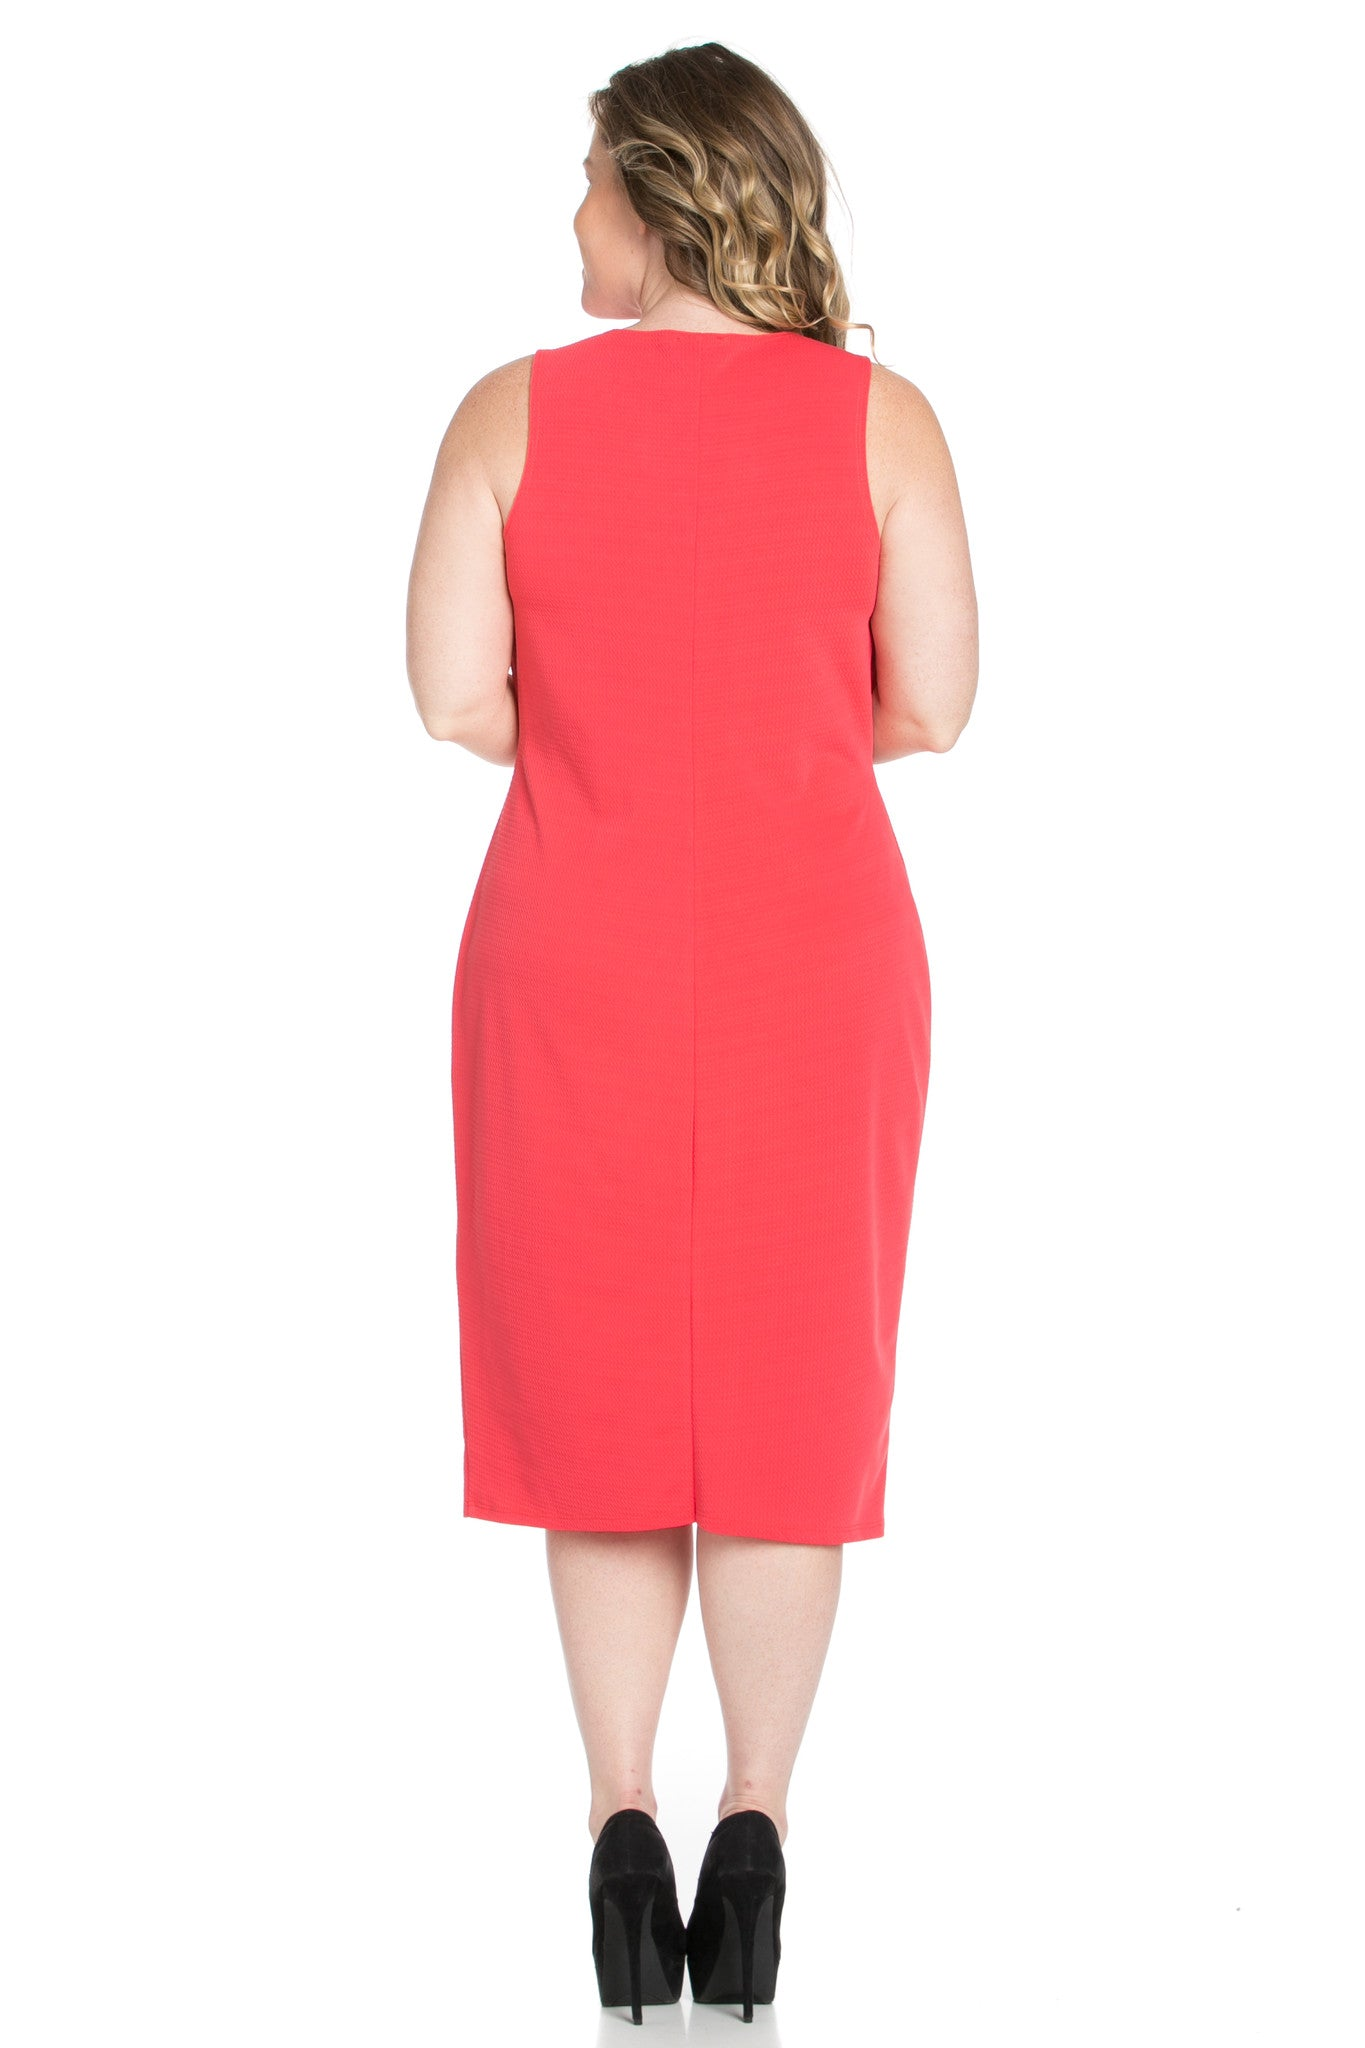 Coral Modest a Bit with Bare Shoulders Dress - Dresses - My Yuccie - 7